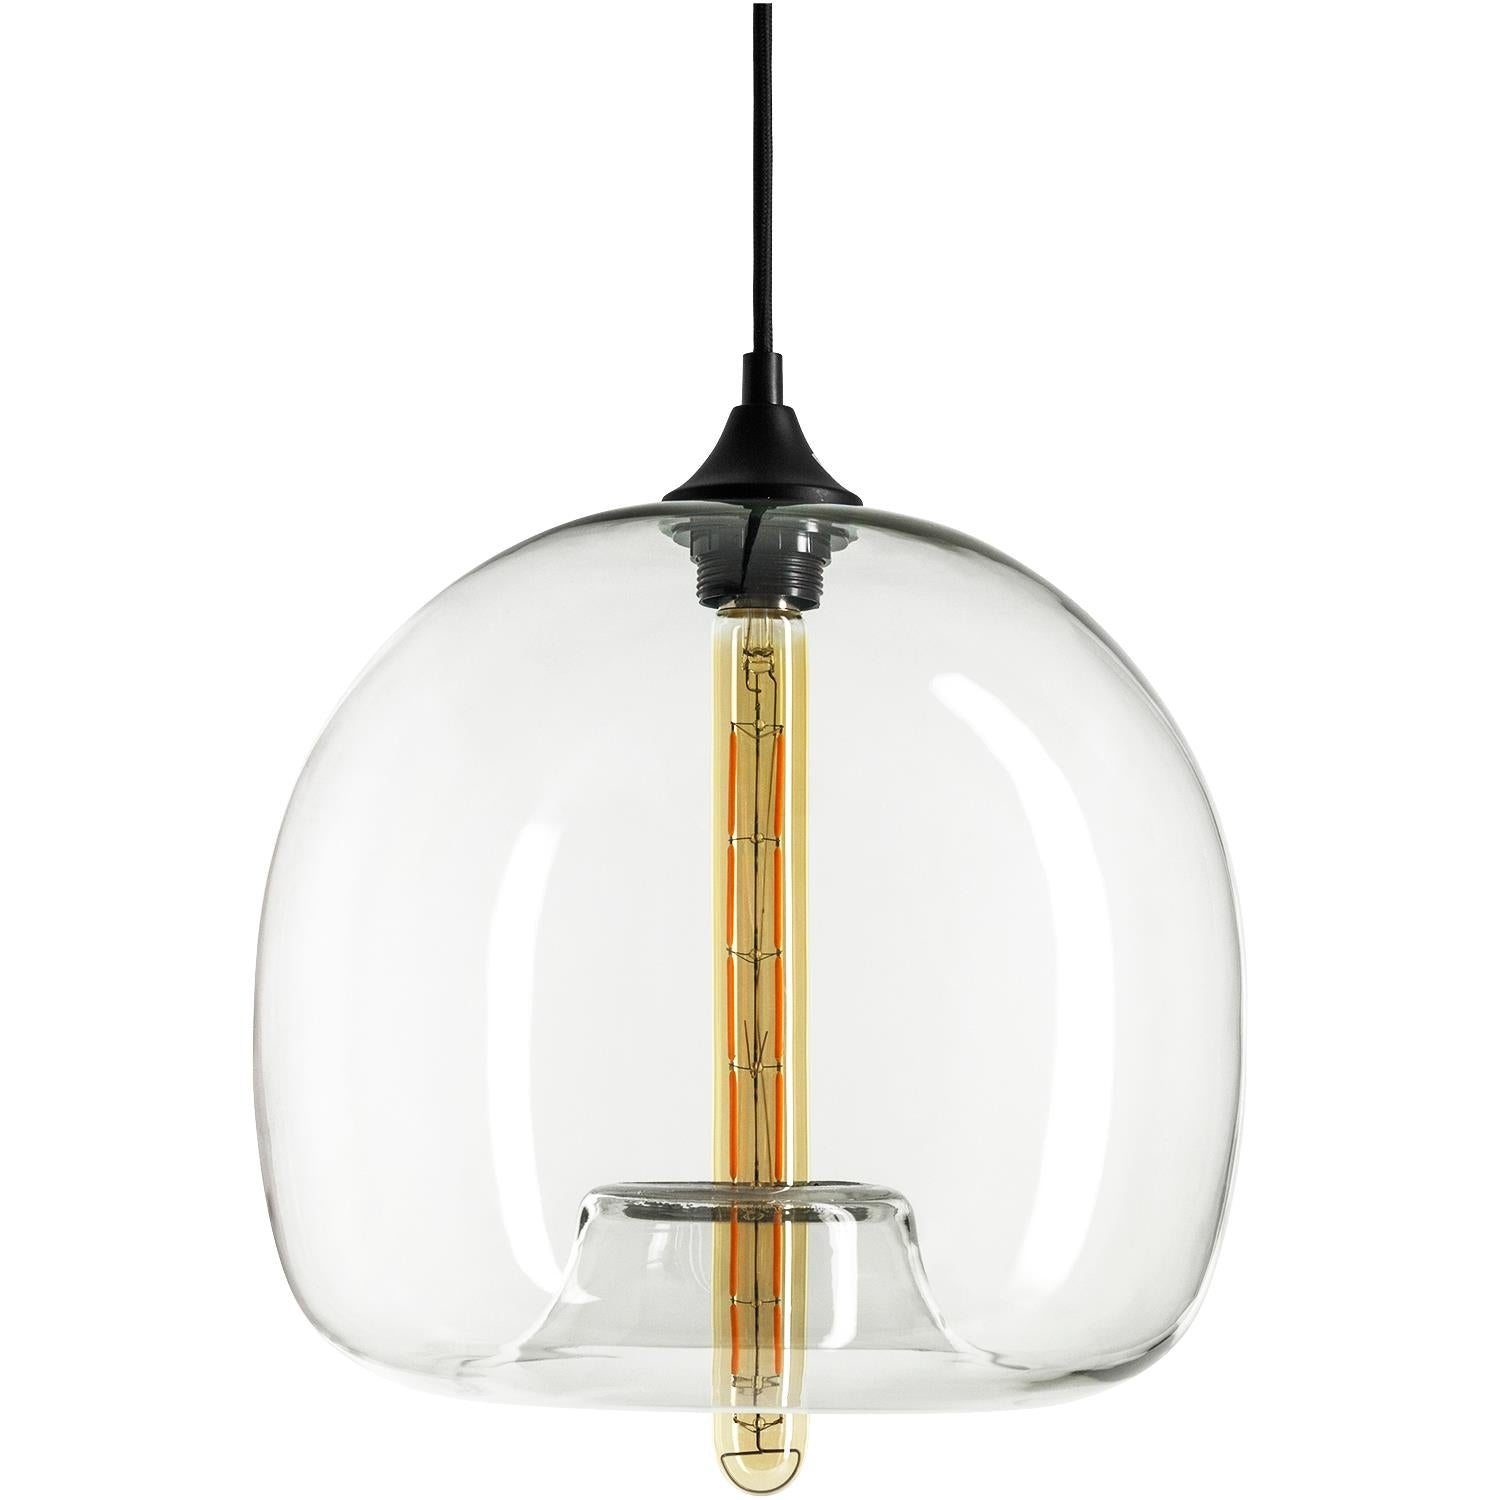 "Sunlite 07048-SU 12"" Glass Sphere Collection Pendant Vintage Antique Fixture"